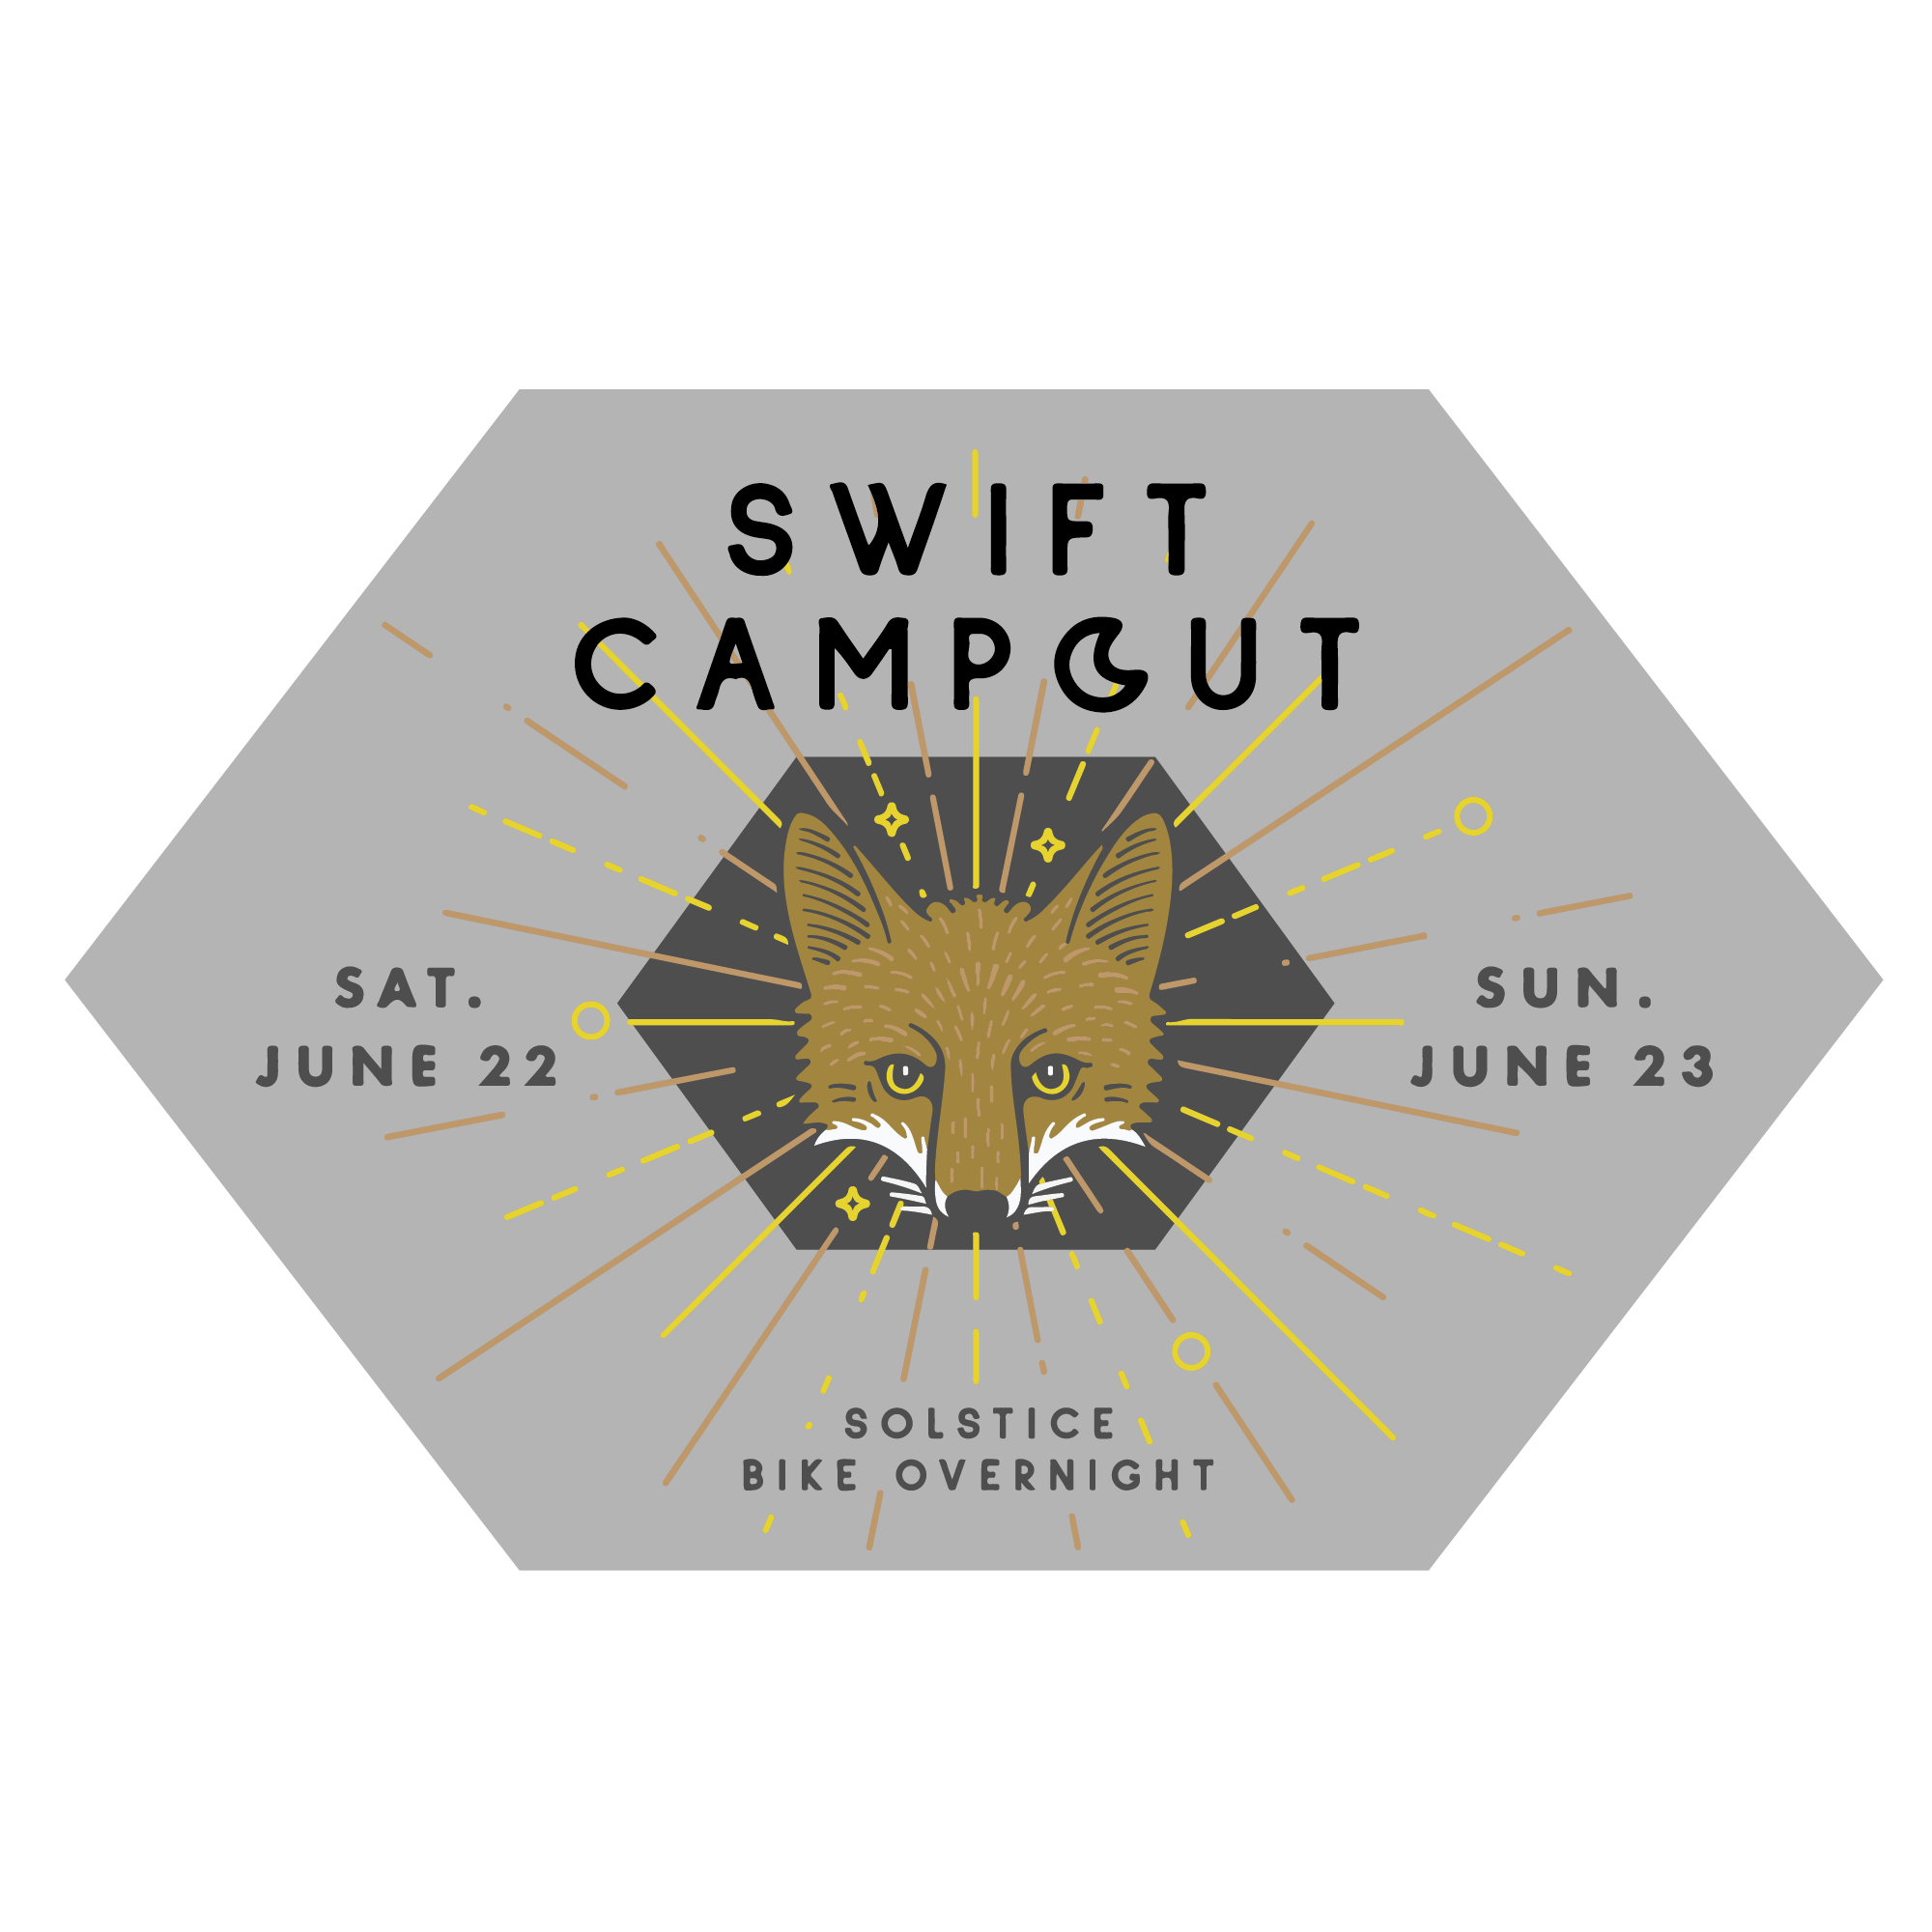 SWIFT CAMPOUT WEBSITE FILES 1.png